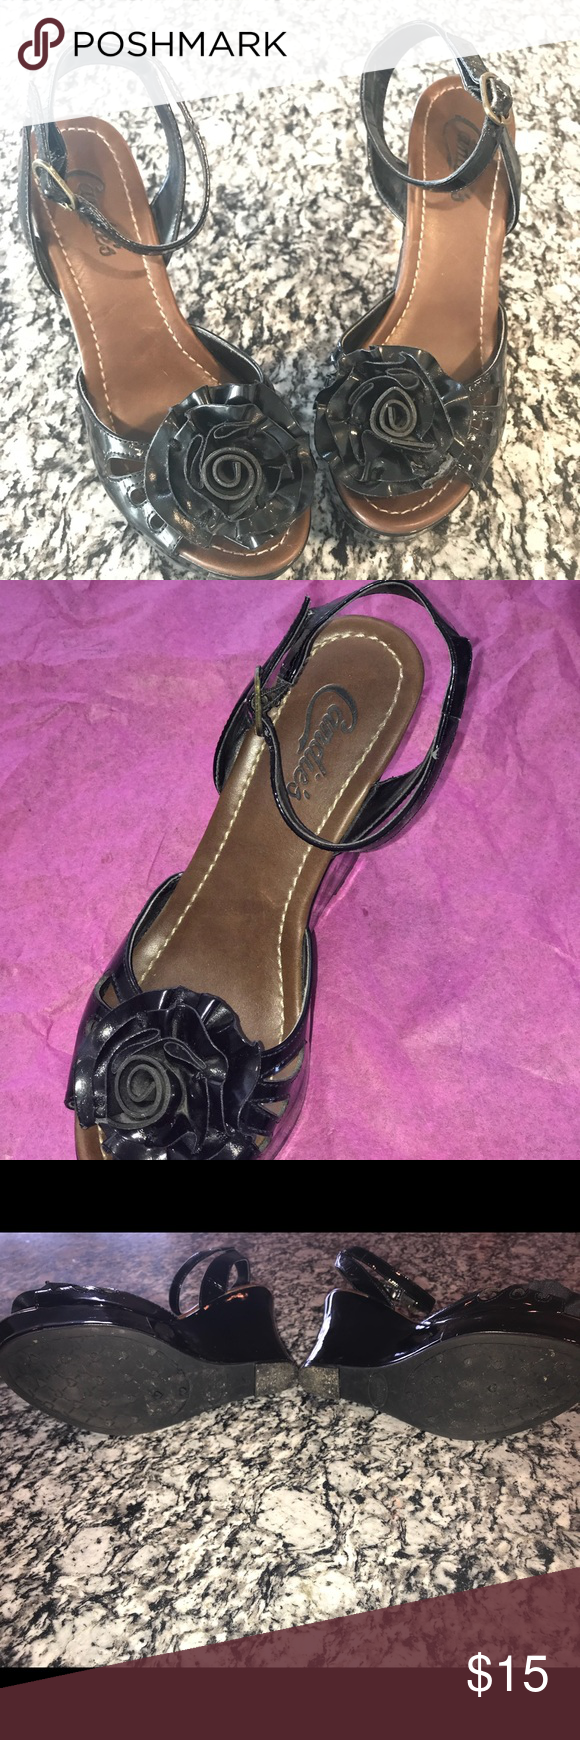 Candies Wedge Sandal Shiny black wedge, with ankle strap. Used, good condition. More comfy than they look! 🌷 Candie's Shoes Sandals